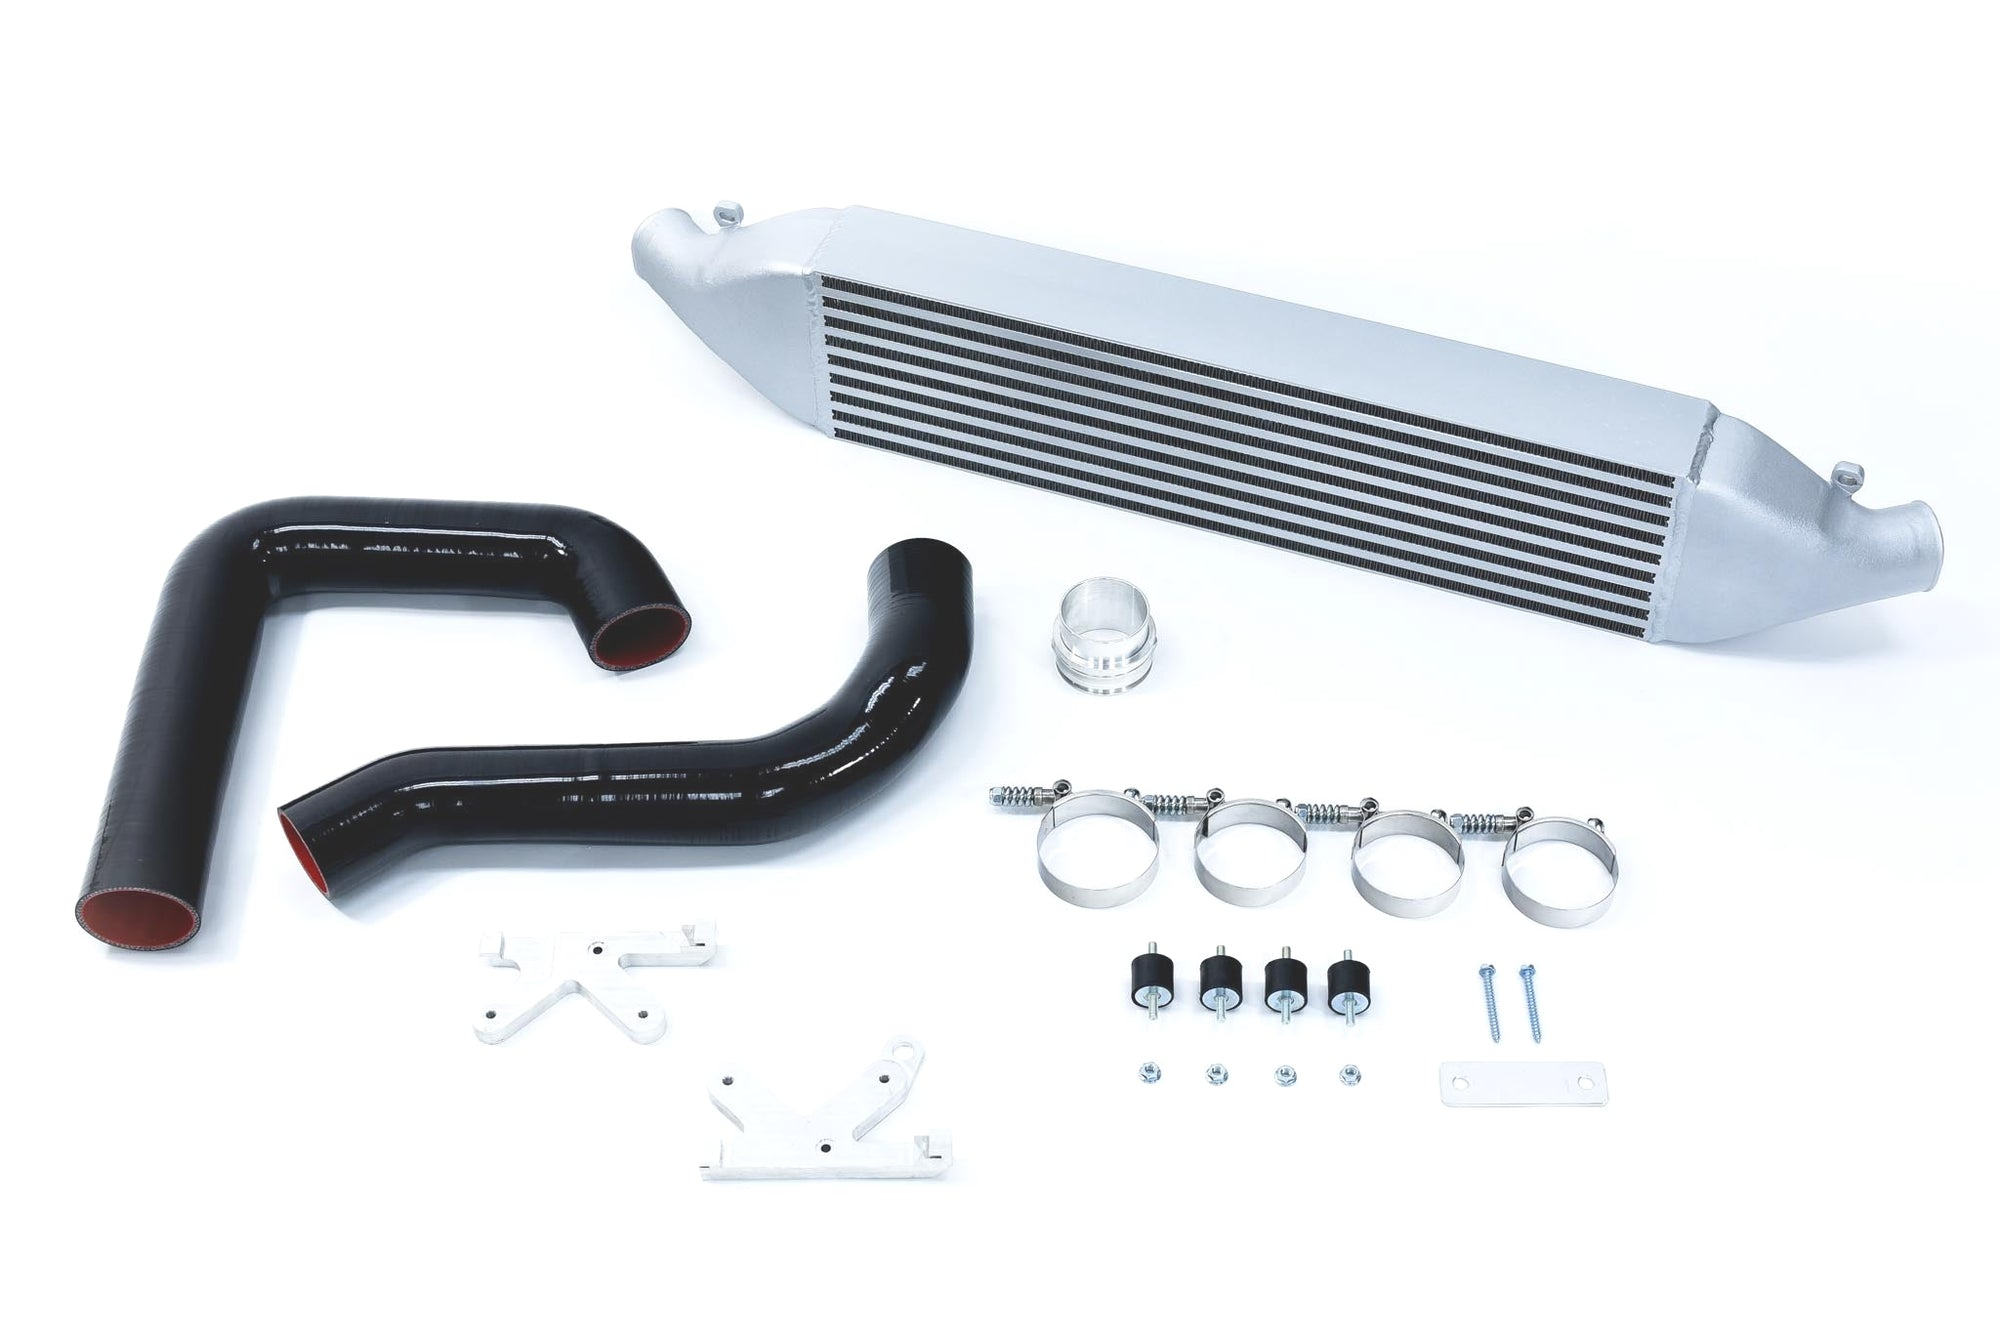 VW MK6 GTI / GOLF R FRONT MOUNT INTERCOOLER - ARM Motorsports